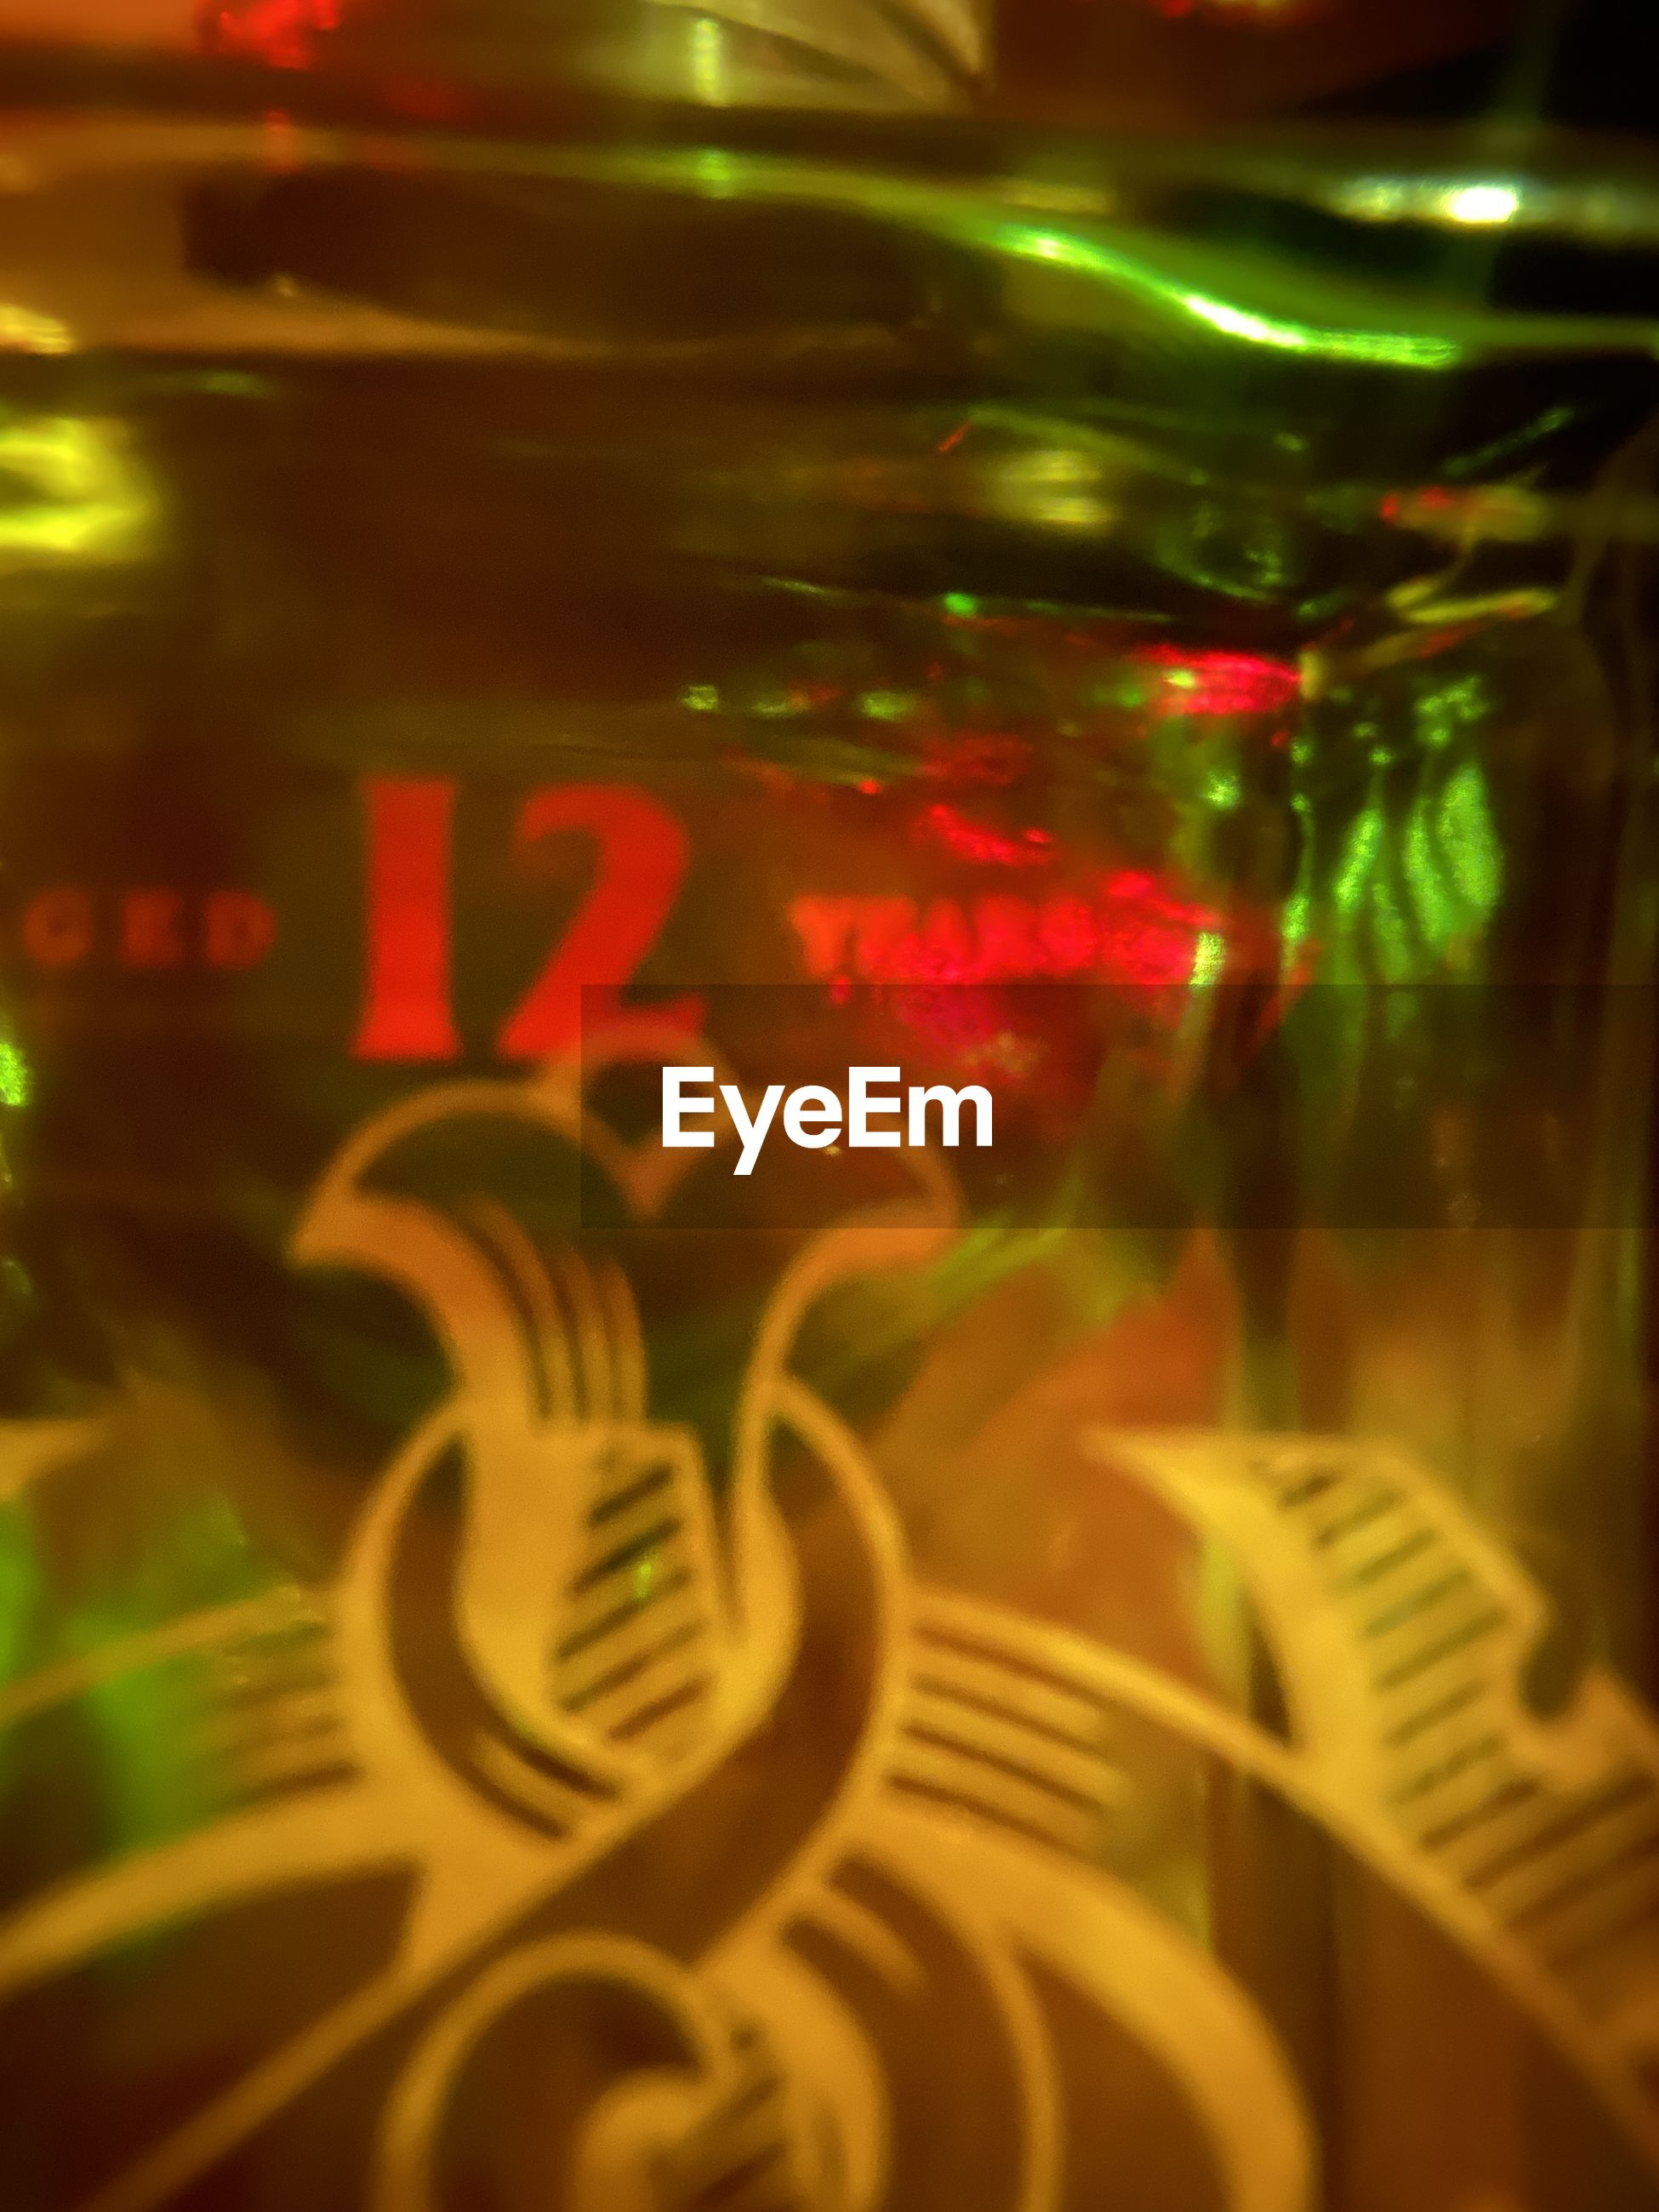 CLOSE-UP OF TEXT ON GLASS OF LIGHT BULB